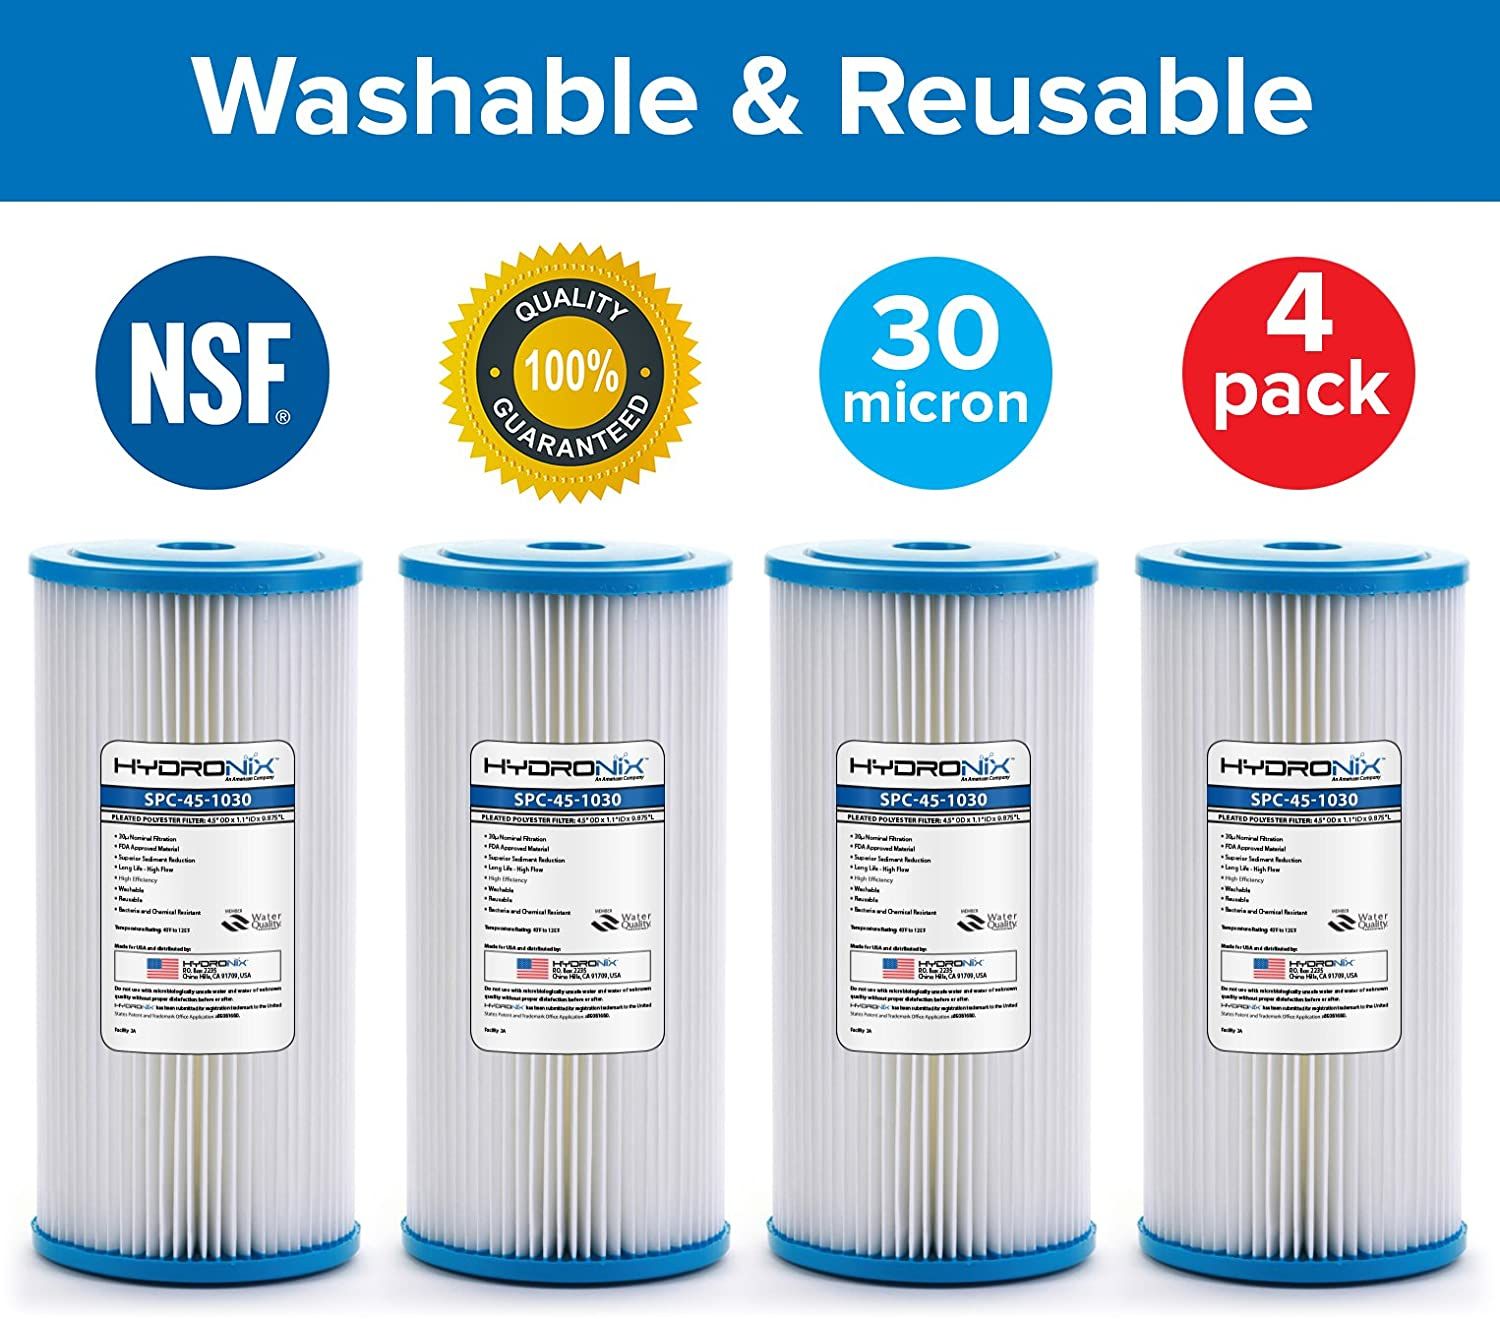 Hydronix 4 Pack SPC-45-1030 R30-BB RS6 Compatible Whole House Sediment Pleated Water Filter Washable Reusable 4.5 x 10, 30 Micron